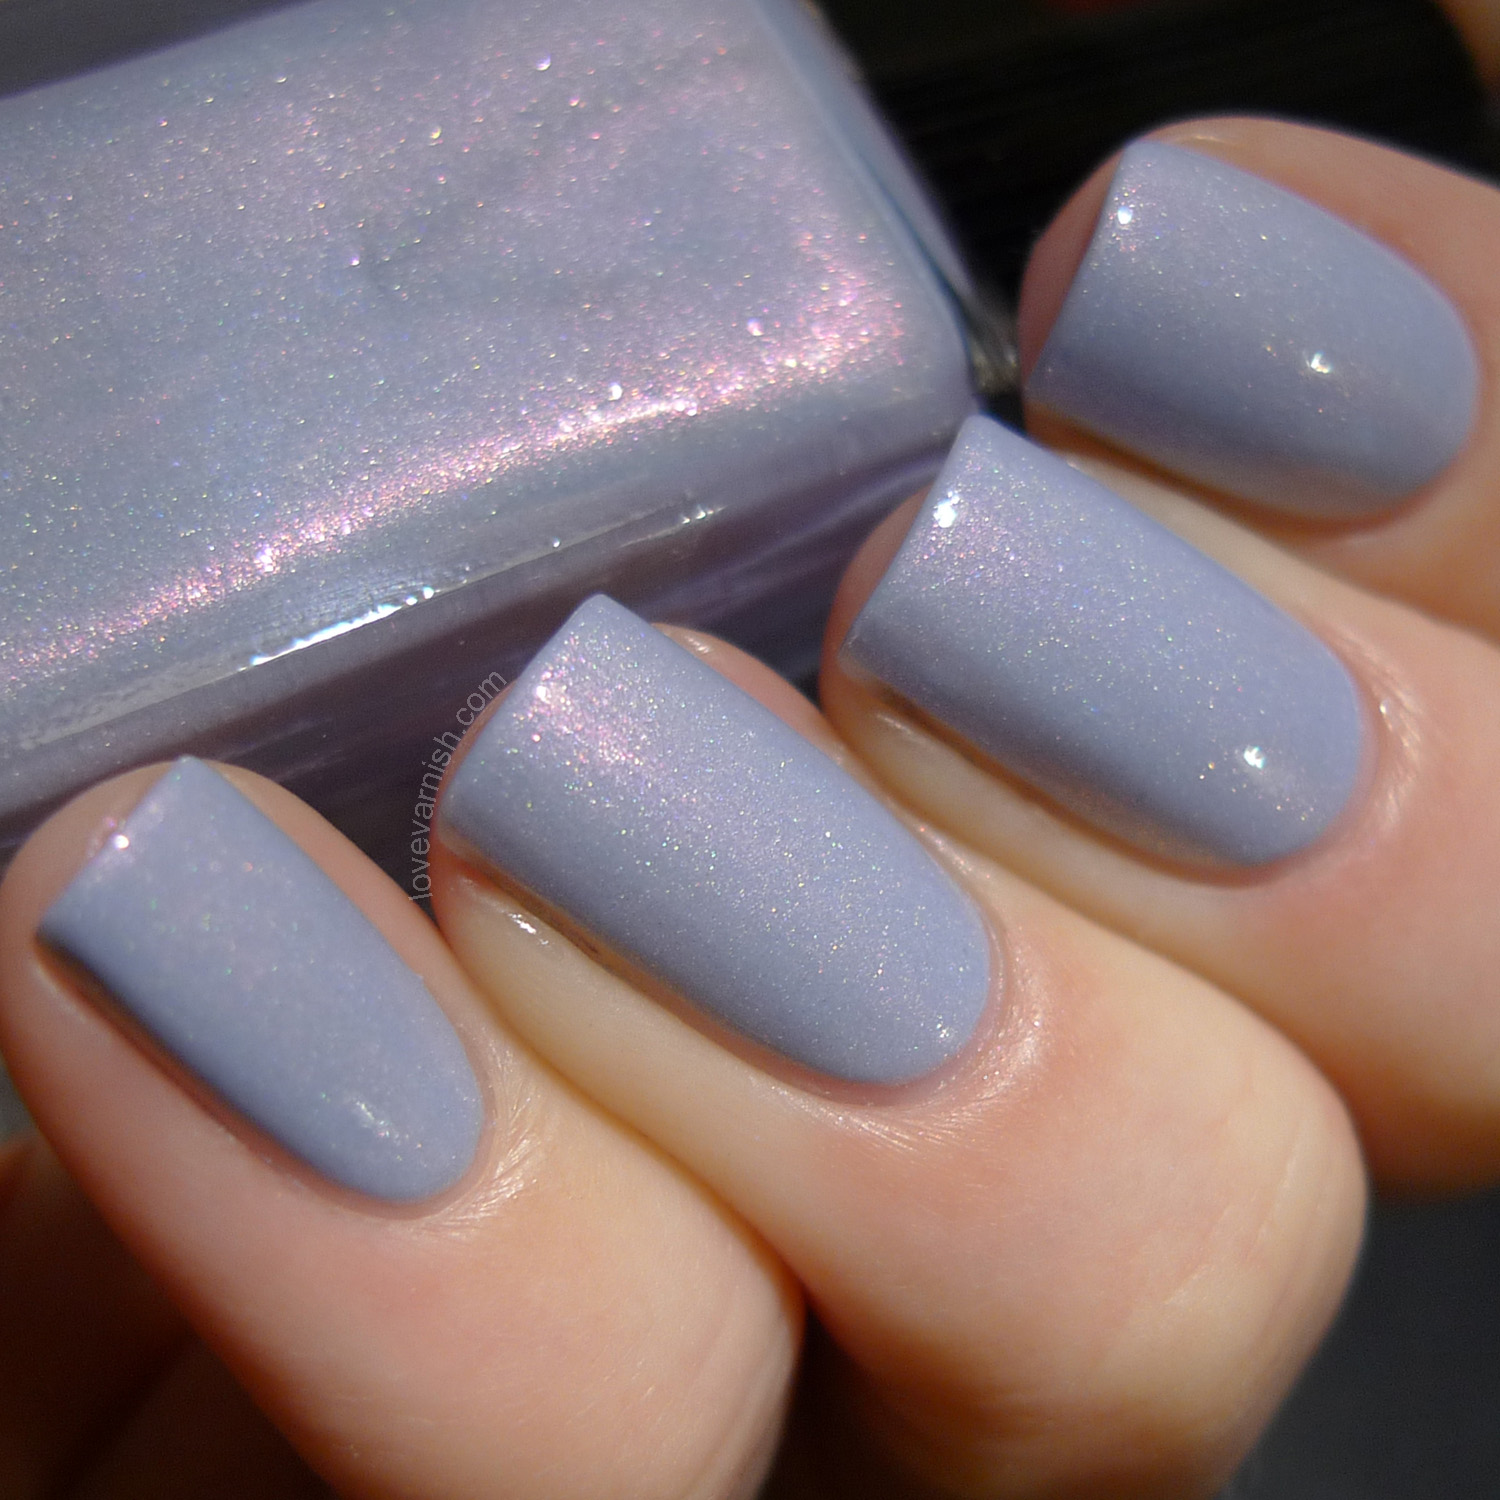 Cadillacquer She's One Of A Kind soft grey shimmer polish